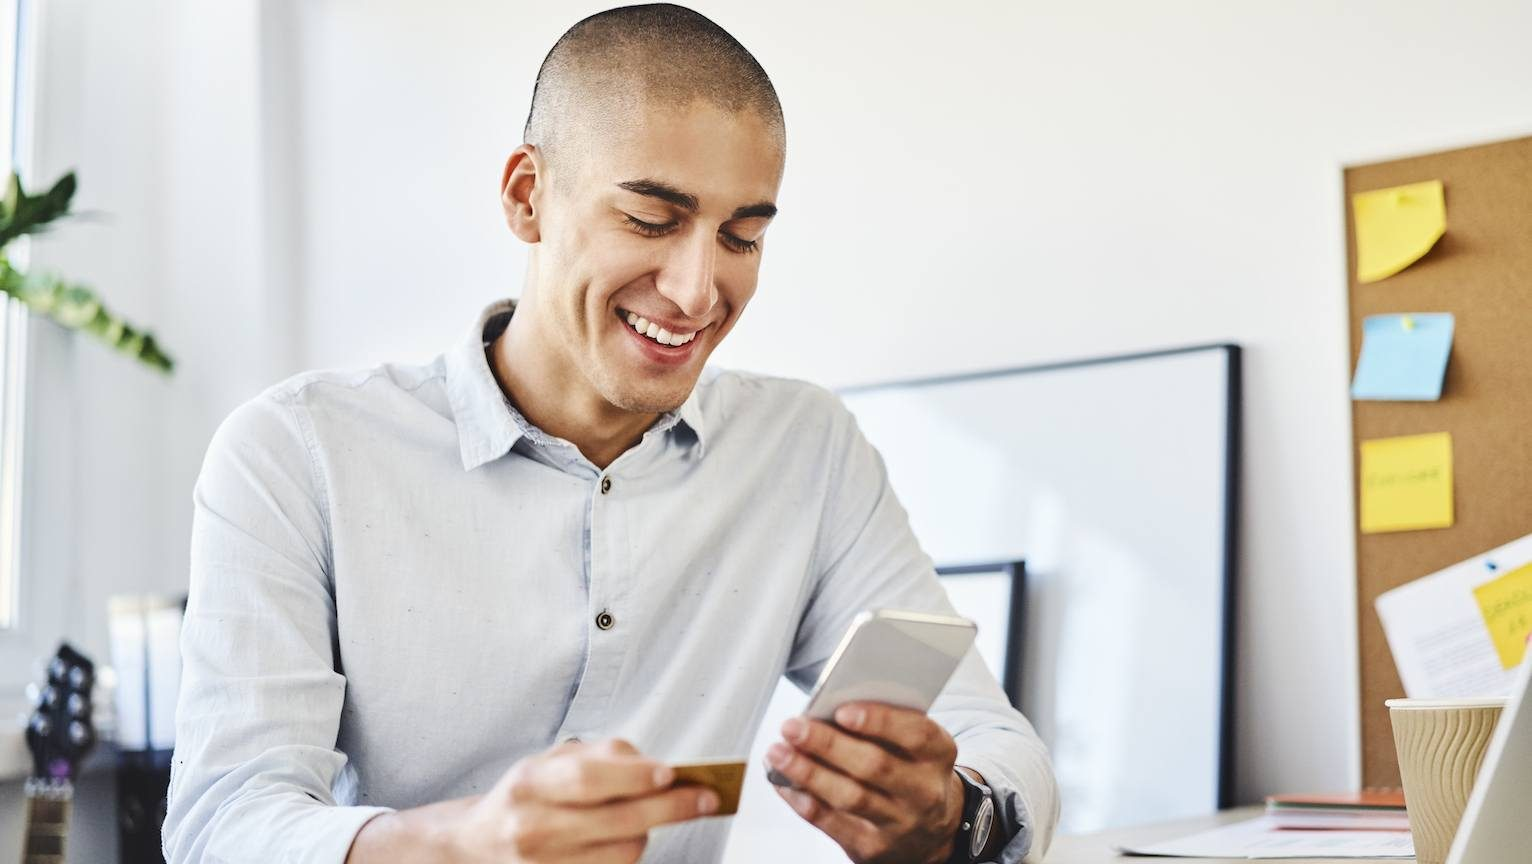 Young man sitting in home office paying online with credit card and smartphone.